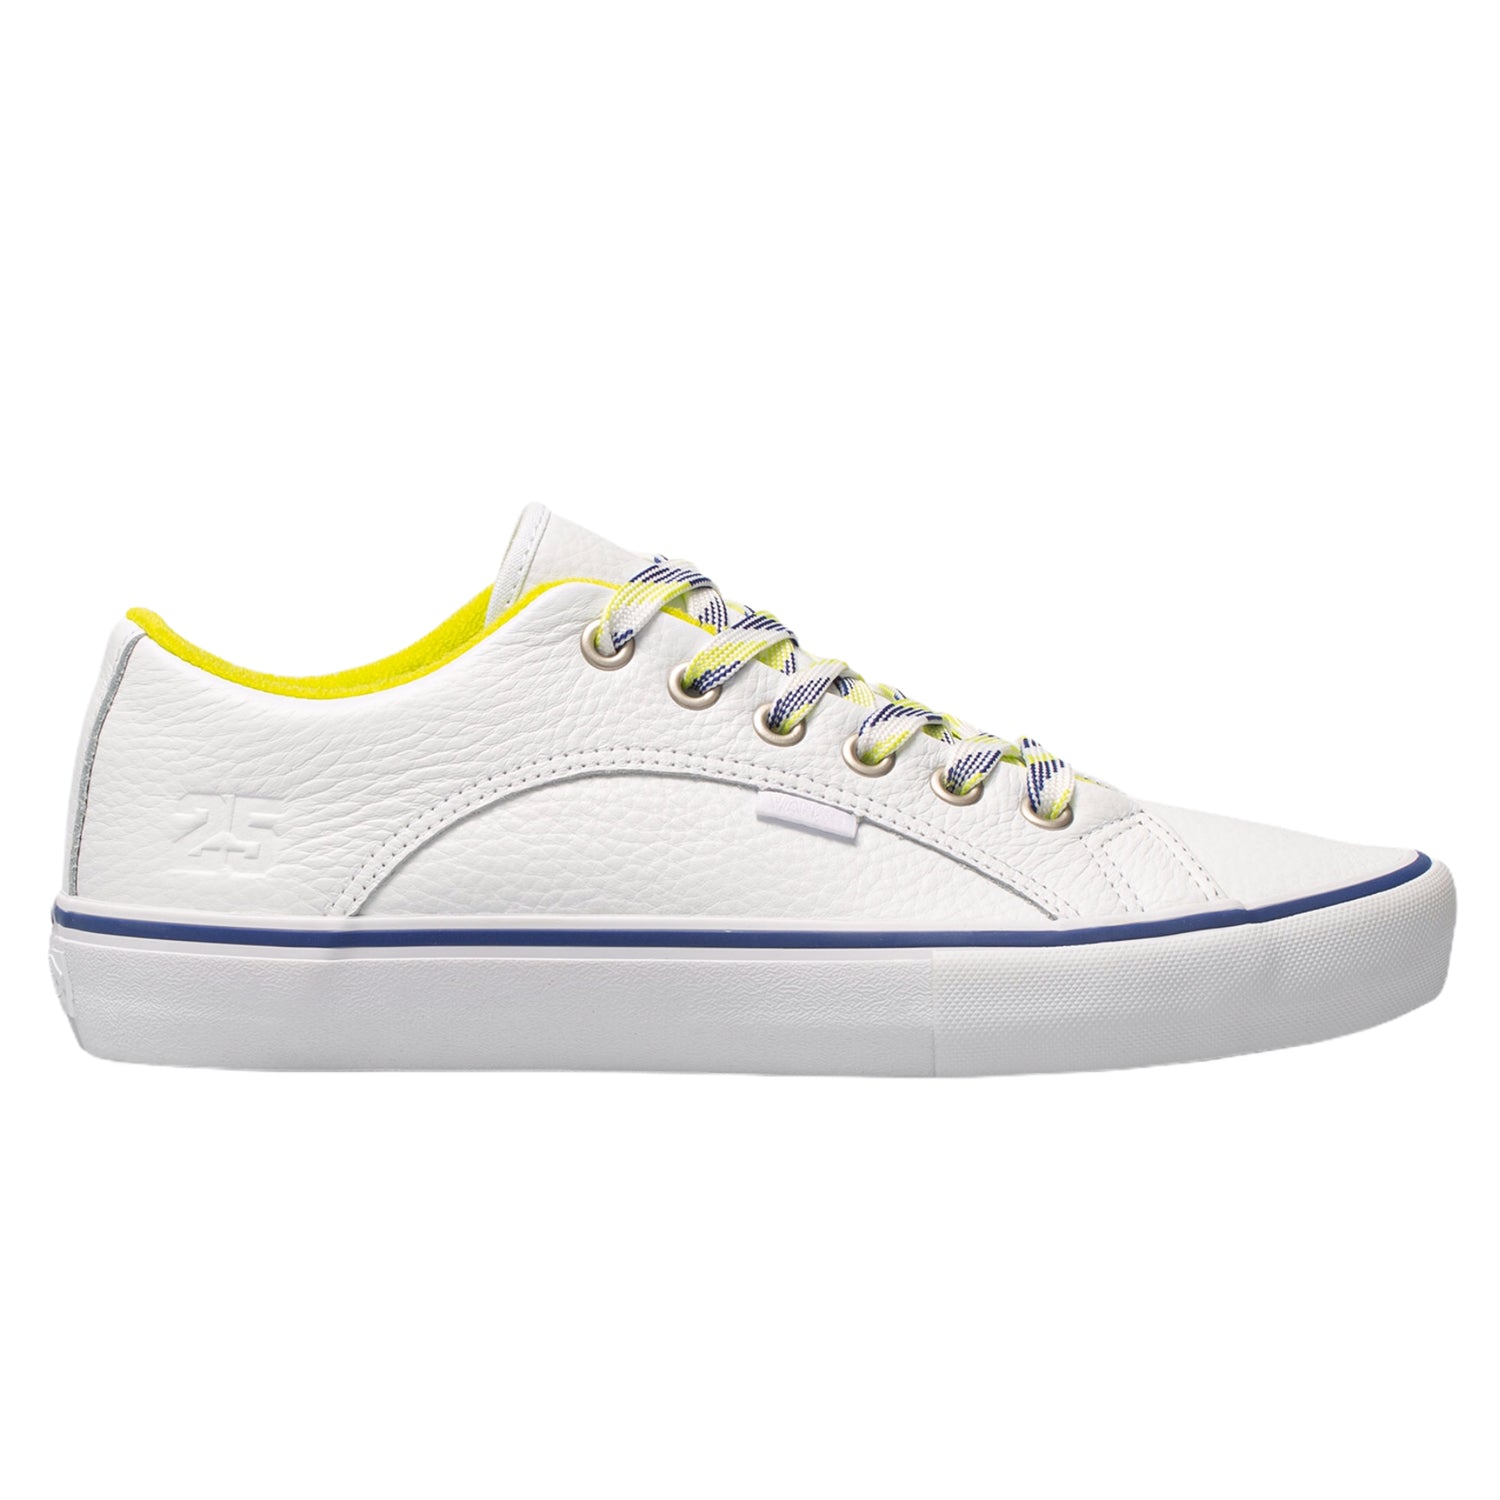 Vans Lampin Pro LTD Quartersnacks